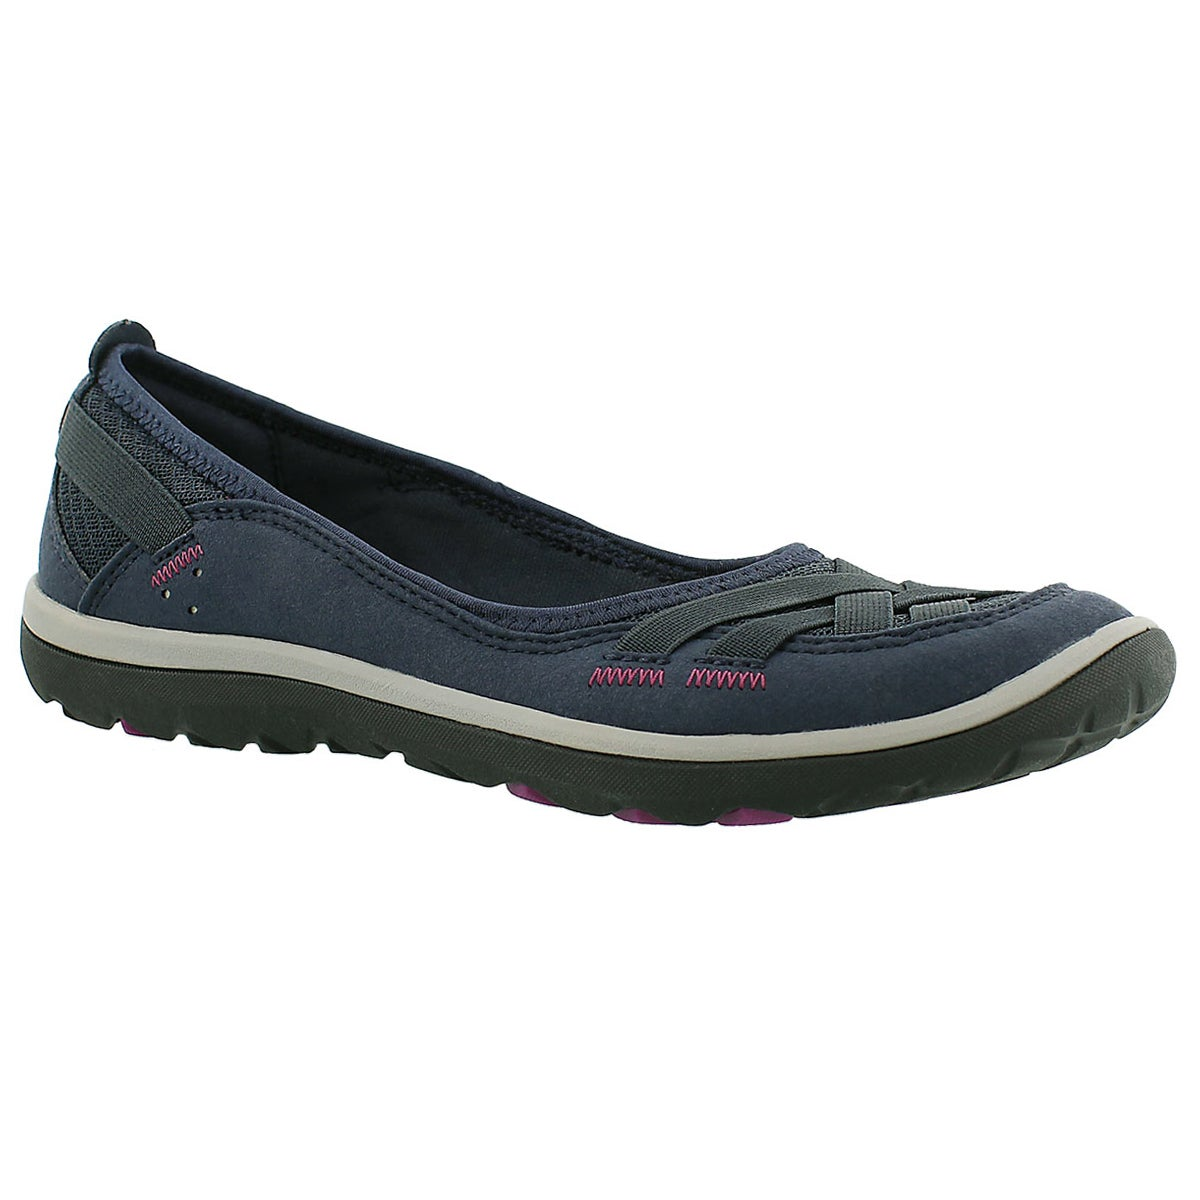 Women's ARIA PUMP navy slip on casual shoes